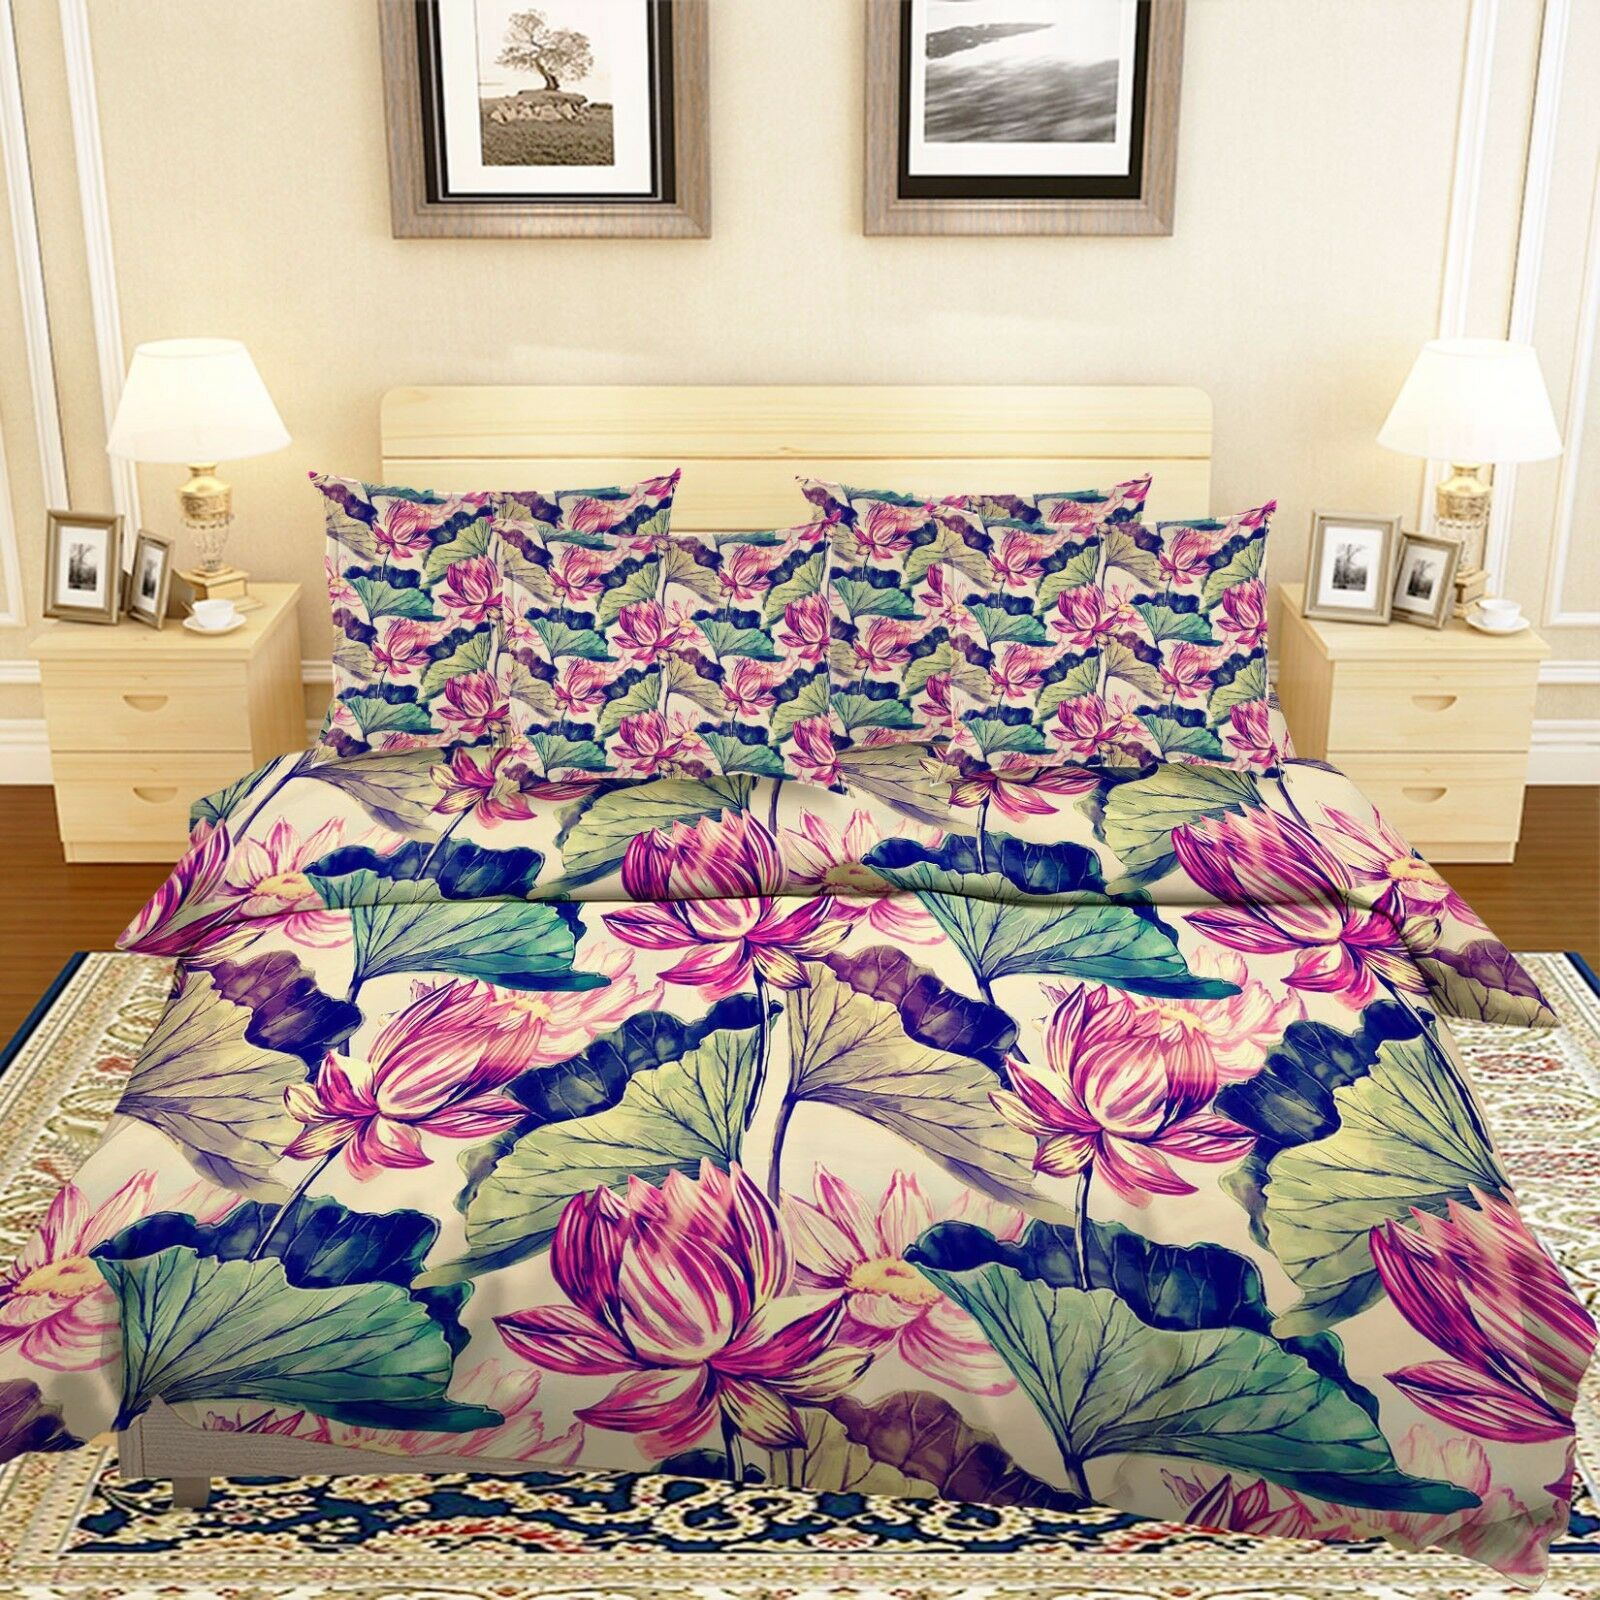 3D Lotus Painted 877 Bed Pillowcases Quilt Duvet Cover Set Single Queen UK Kyra